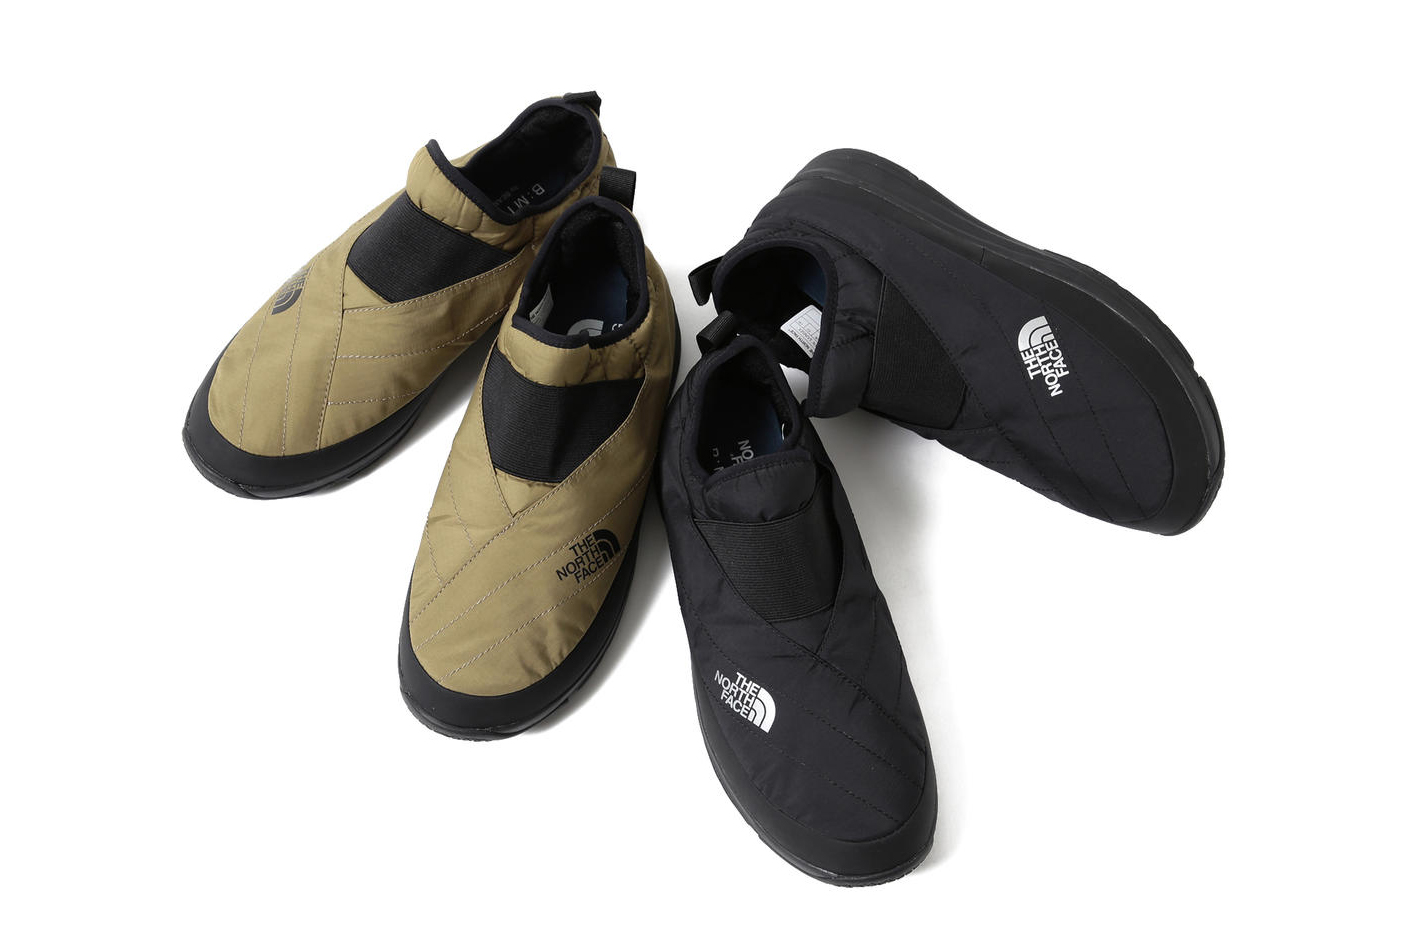 beams BEAMS The North Face Kimono Nuptse Shoes life store footwear slippers olive green black november 2018 drop release date collaboration insulated camp padded japan release date info buy purchase sale sell exclusive